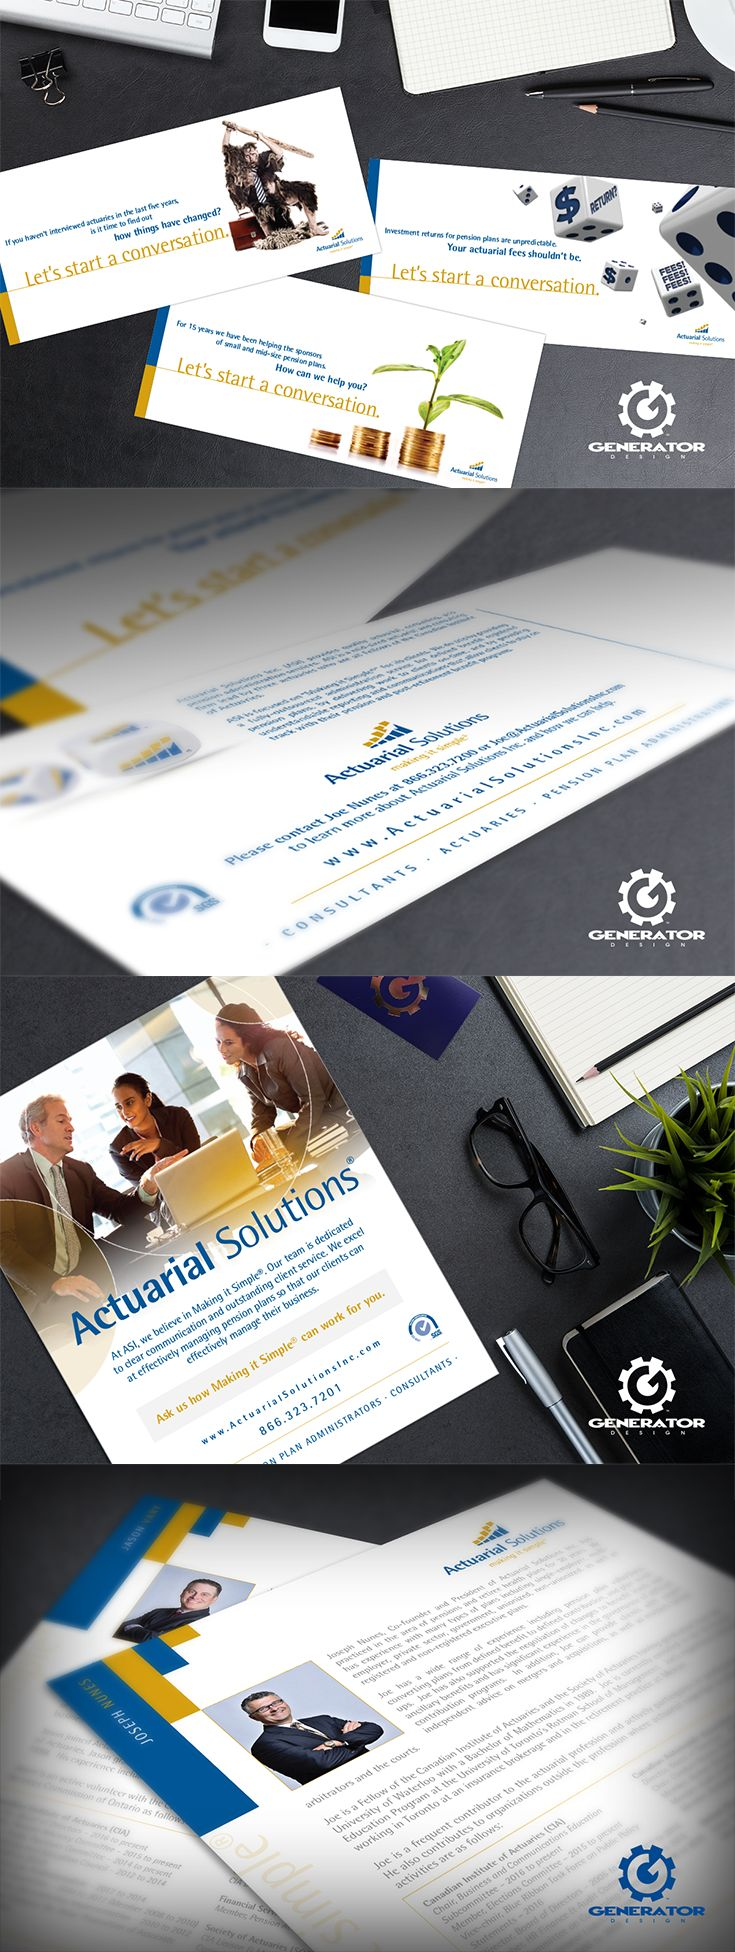 Actuarial Solutions Inc., whose focus is to offer defined benefit pension and retiree health programs, required informative pieces. We followed through with a clean, corporate direction, carrying their brand elements throughout mailers and ads, to boost brand awareness and attract new clients. Our goal was to make content easily digestible by enhancing paragraphs with their signature colours, and by supplementing with conceptual graphics to illustrate their services. #GeneratorDesign